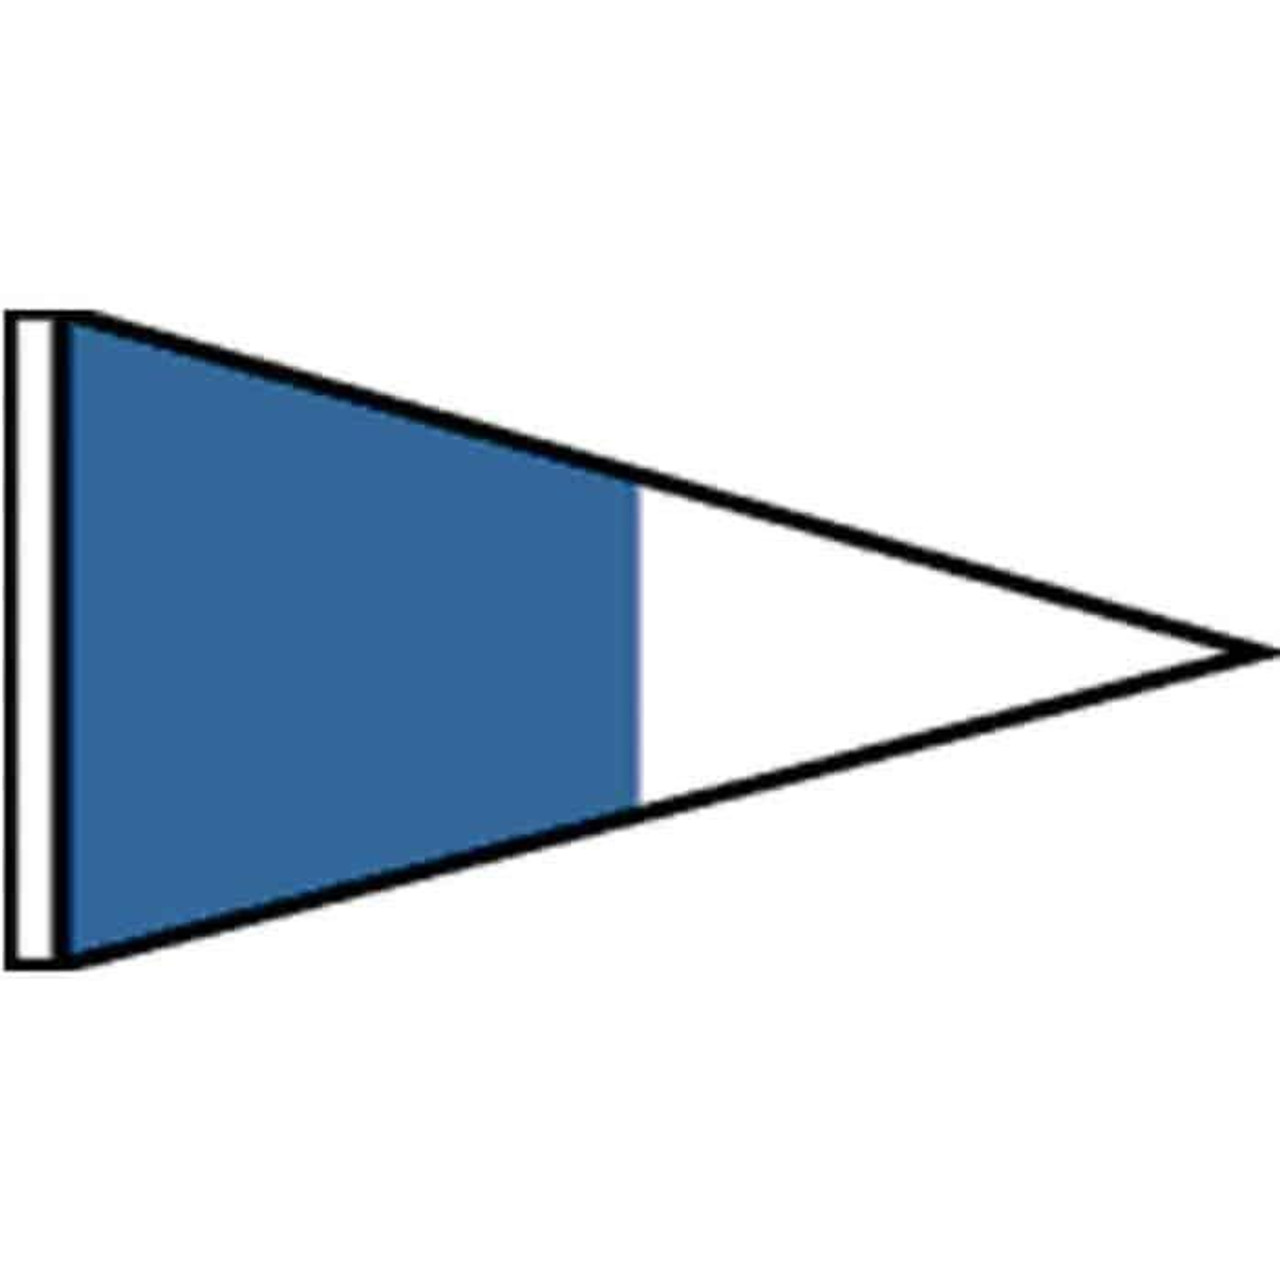 2nd Repeat Flag